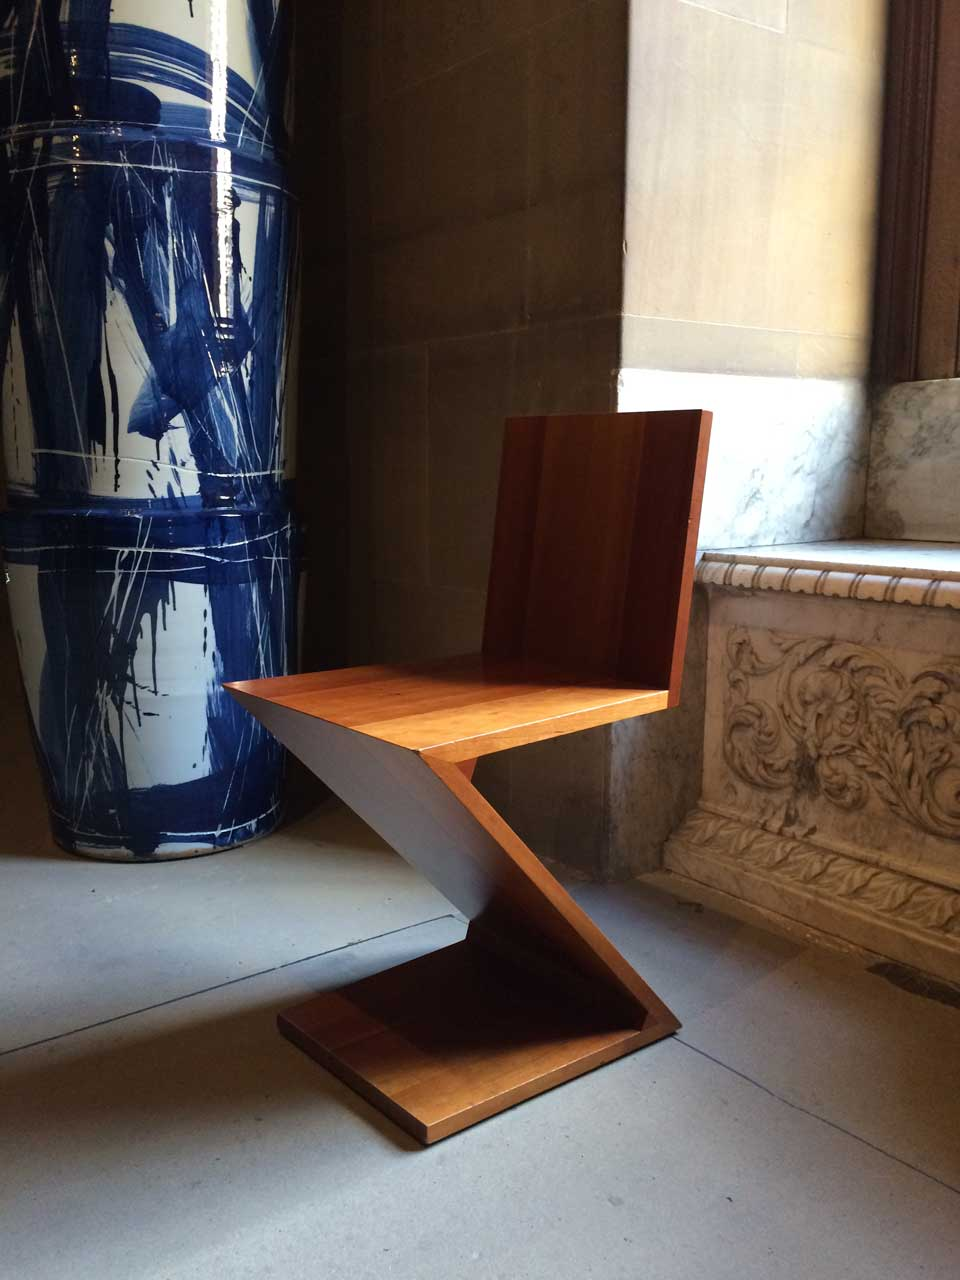 chatsworth-chair-and-vase